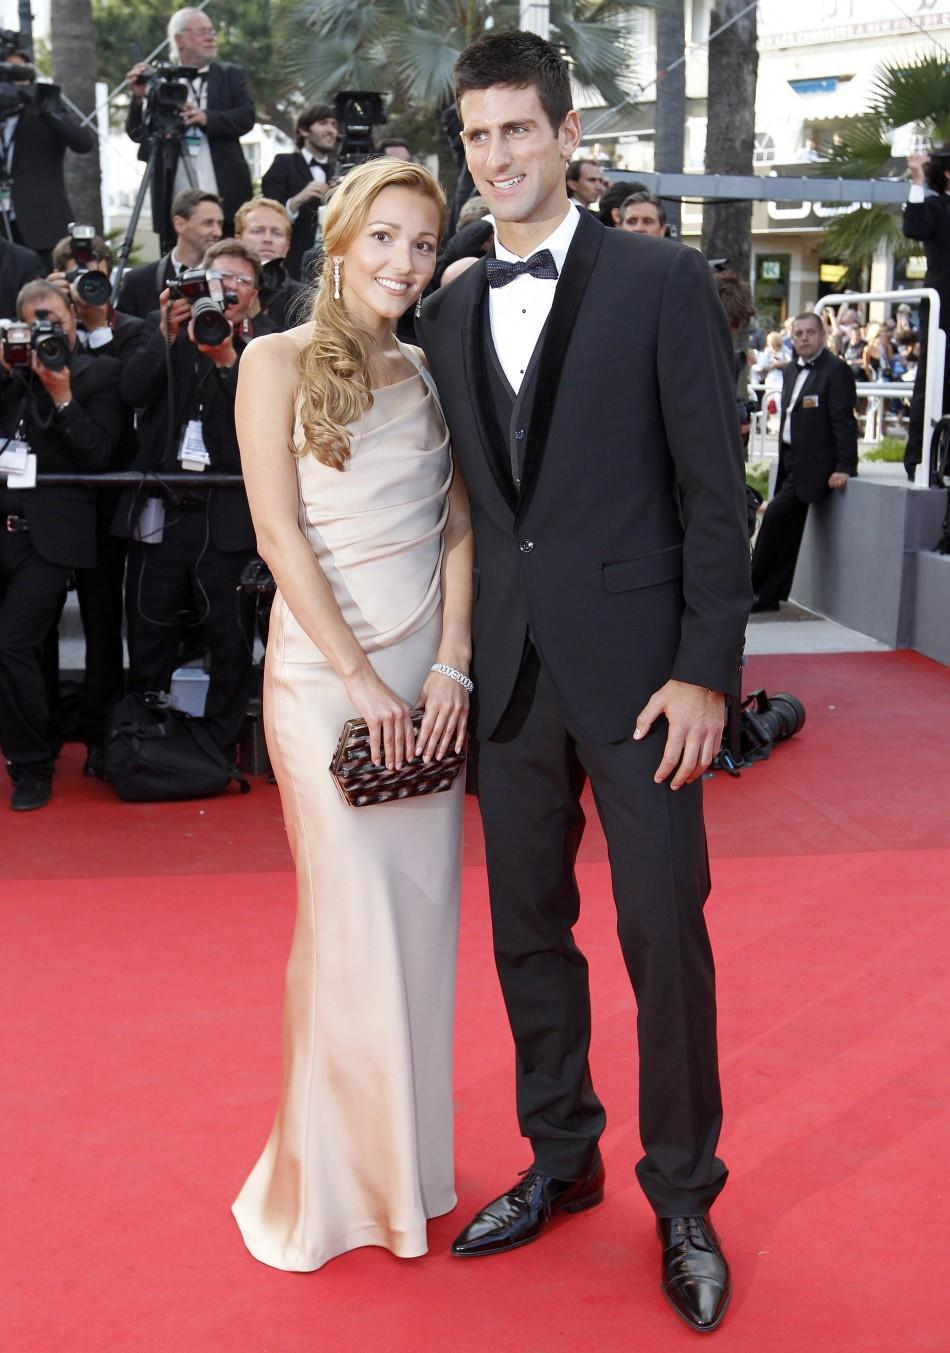 Tennis player Djokovic and girlfriend Ristic arrive on the red carpet for the screening of the film The Beaver at the 64th Cannes Film Festival